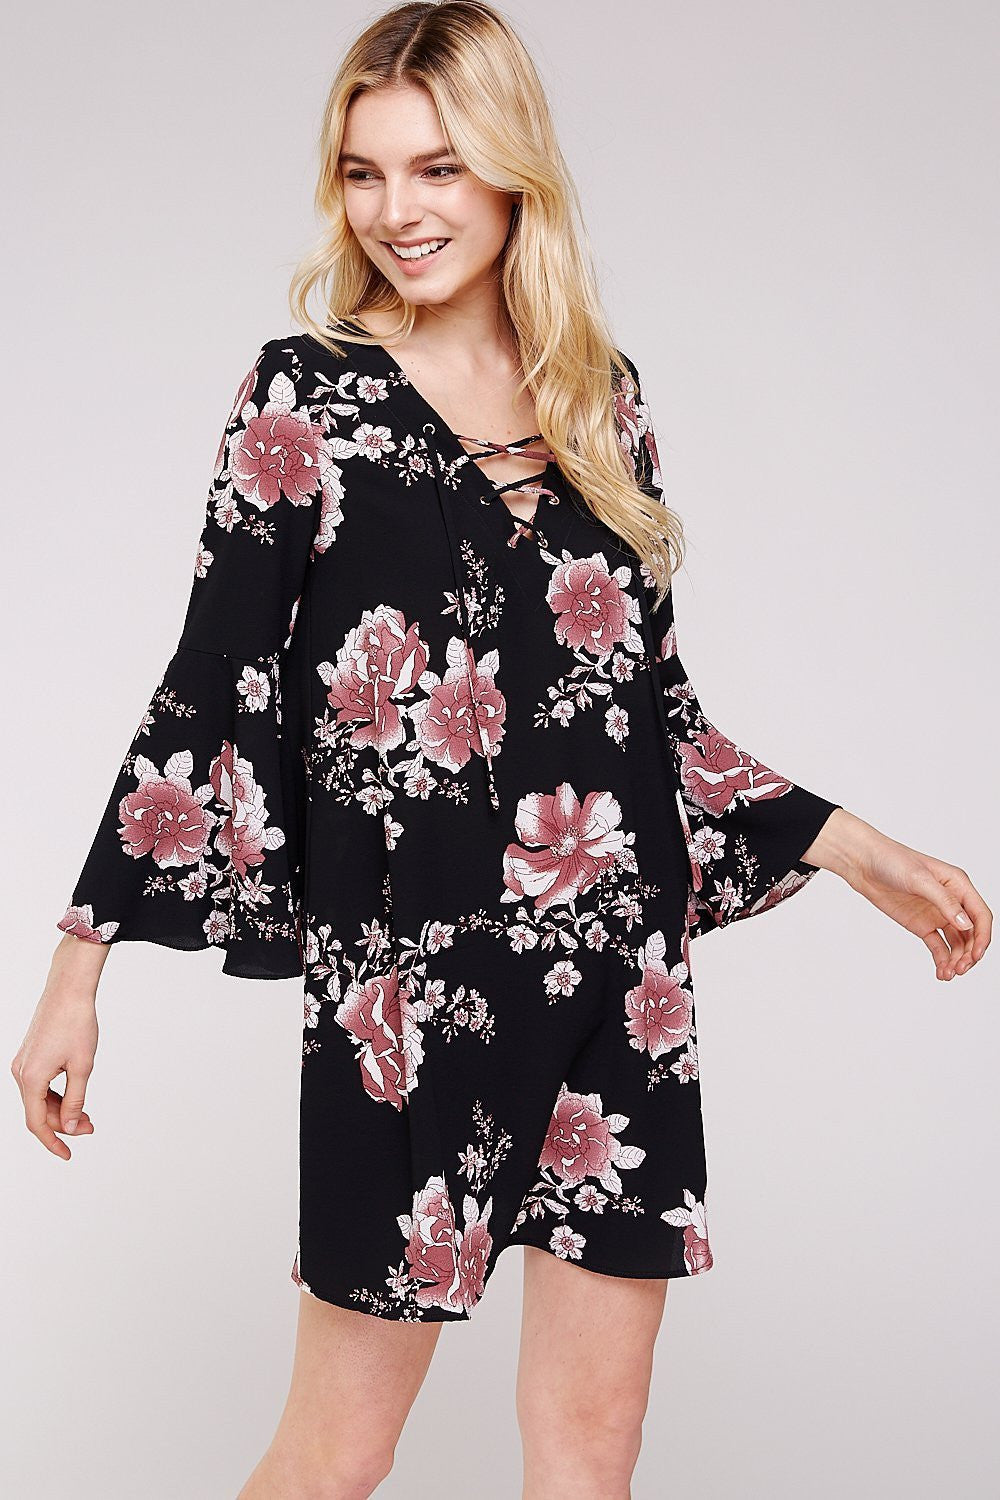 Wholesale Clothing, Online Wholesale Clothing, Women Clothing, Bohemian, Free People, tiedye, specialty wash, wholesale seller, wholesale women clothing shop, gypsy look, USA made, URBAN X APPAREL-FLORALS-UDW2001, fashiontrend2019